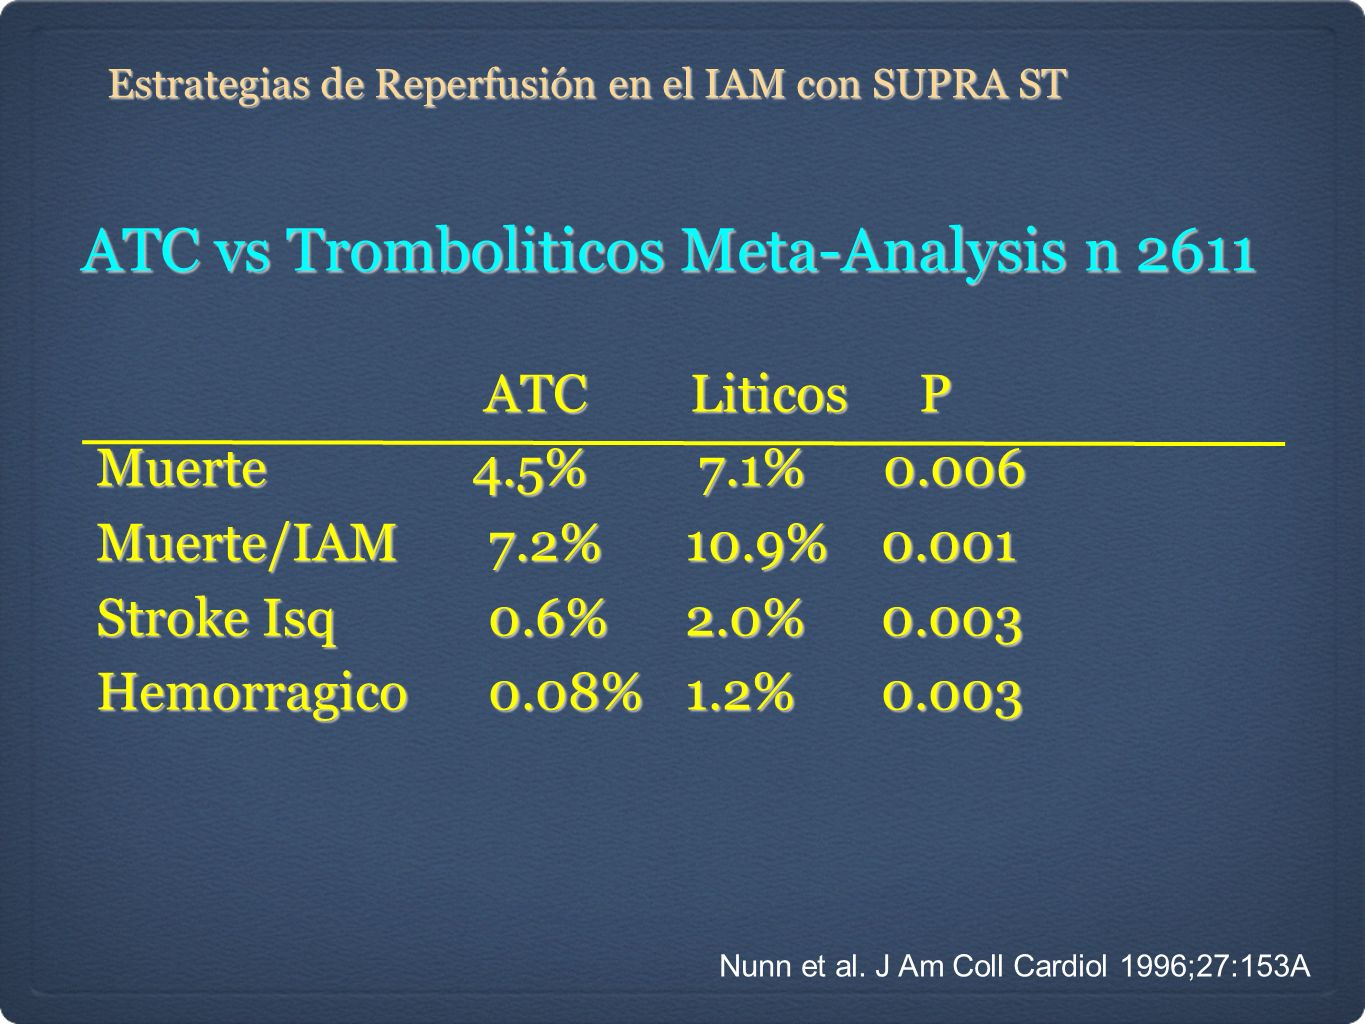 ATC vs Tromboliticos Meta-Analysis n 2611